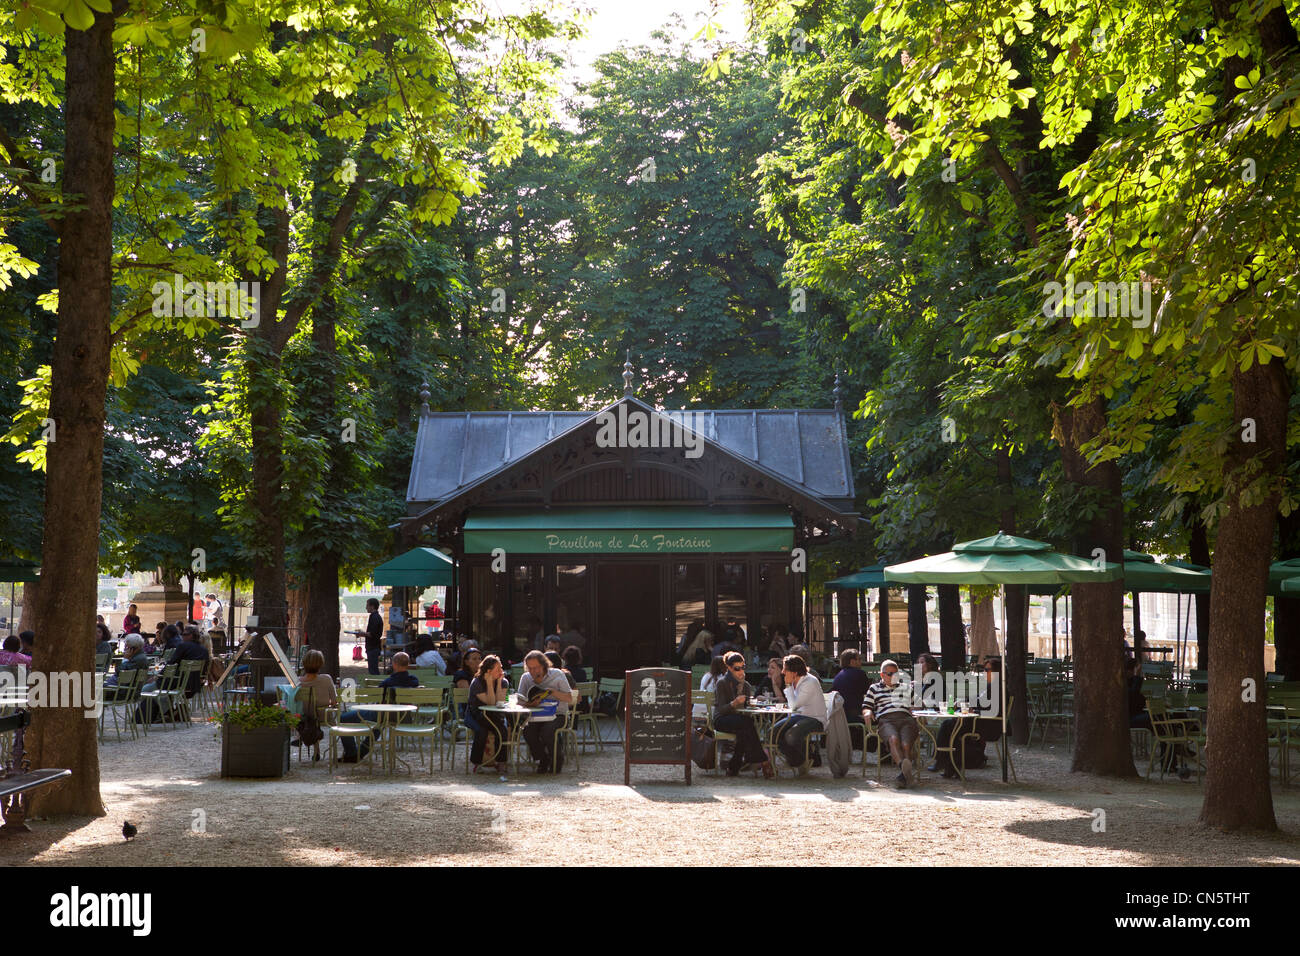 France paris st michel district the luxembourg gardens cafe stock photo royalty free image - Restaurant rue des bains luxembourg ...